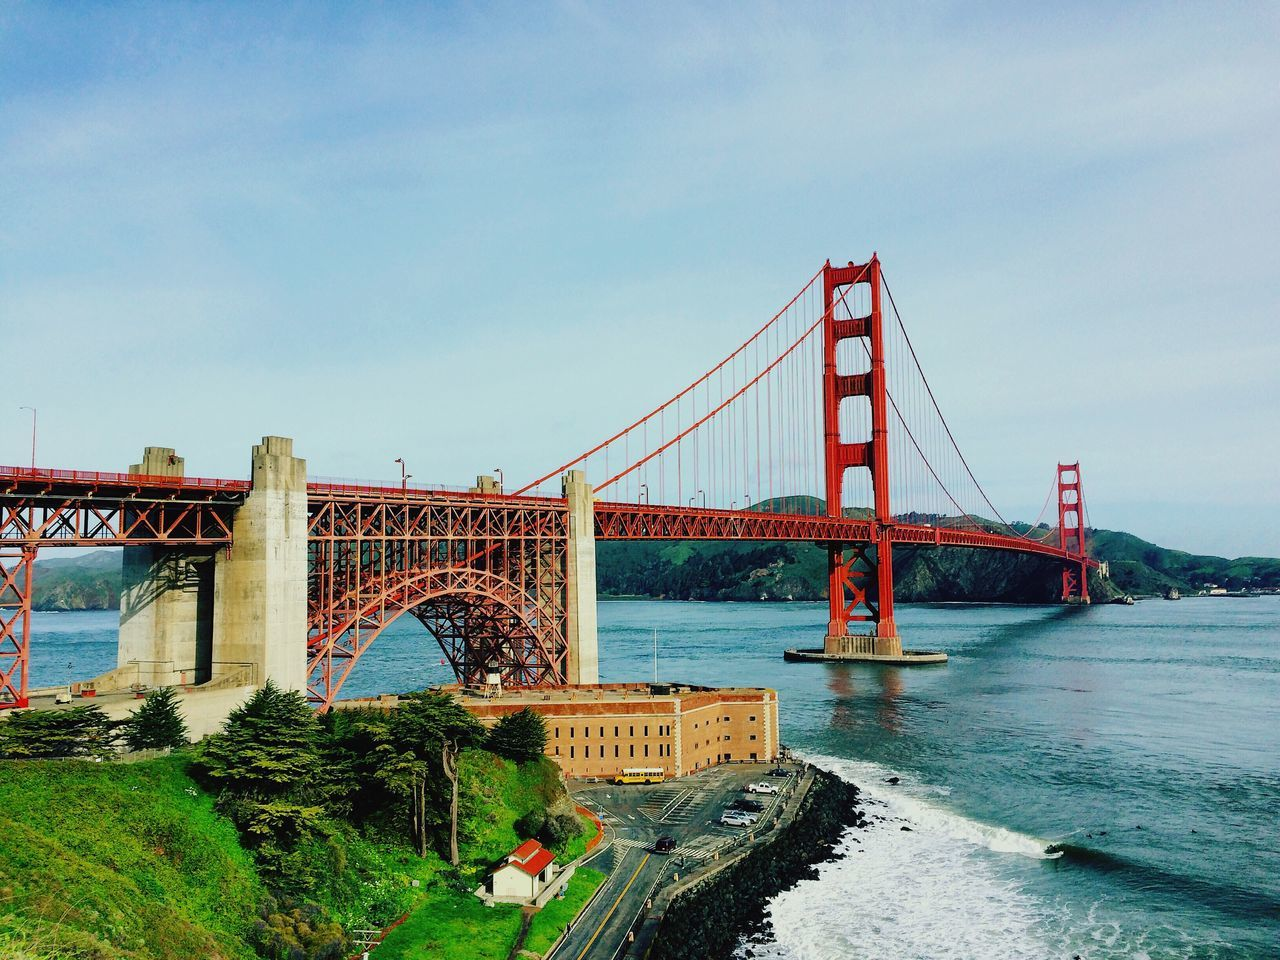 CULT! Architecture Travel City Bridge Outdoors San Francisco America USA Cult EyEmNewHere Aerial Top High Tall Red Red Bridge Famous Places Famous Travel Destinations Day Far American American Dream First Eyeem Photo Miles Away